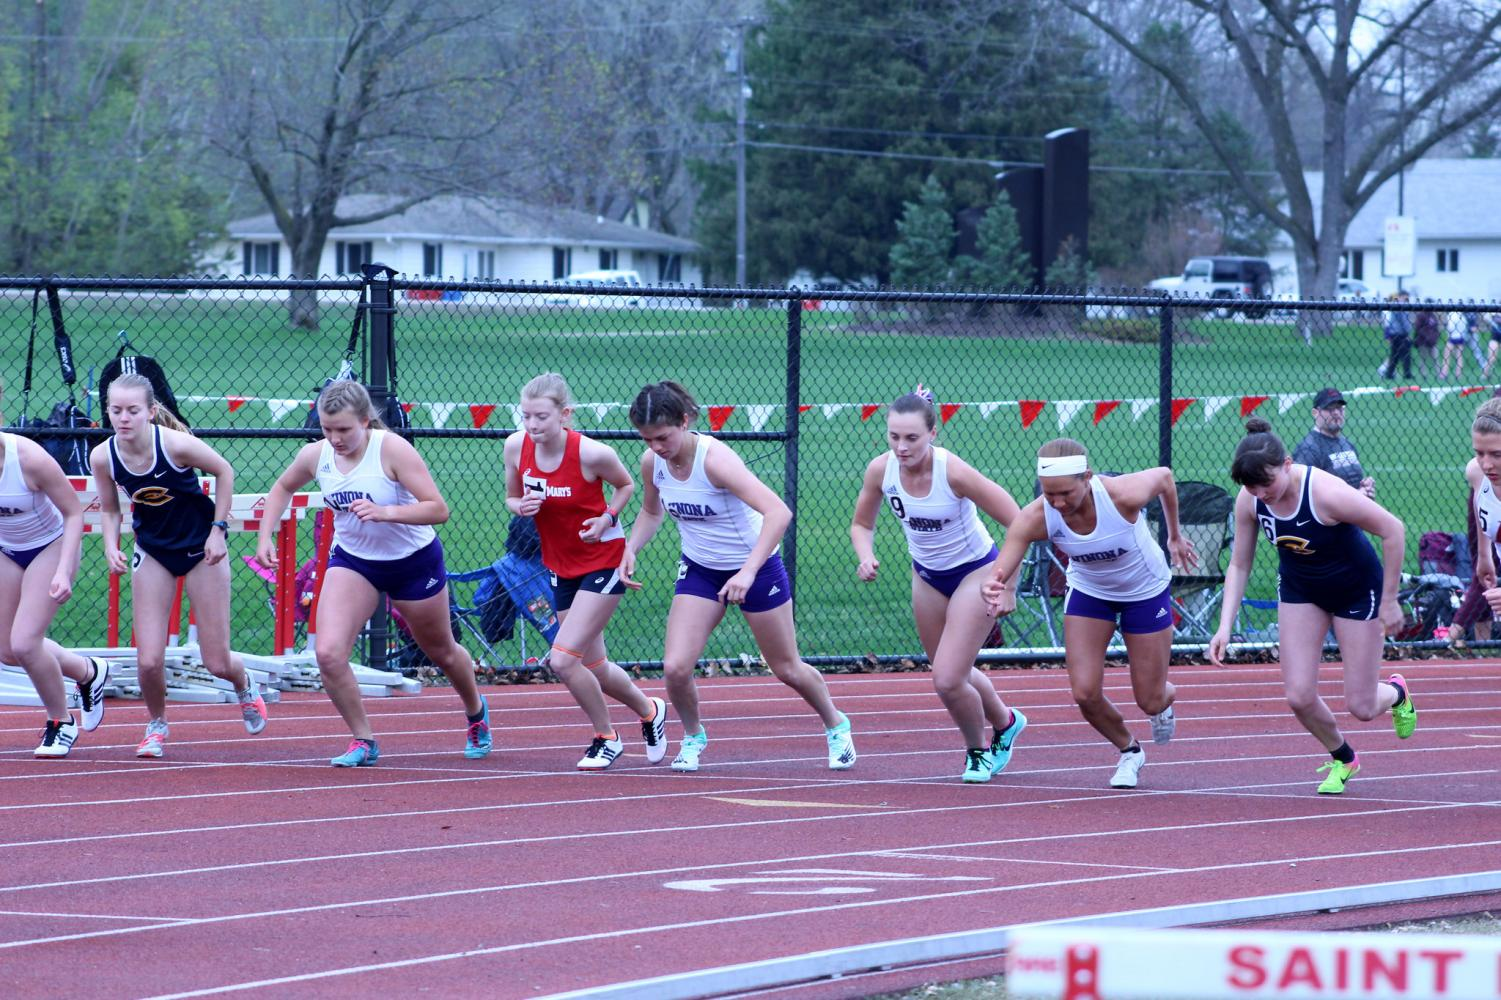 Members of the Winona State track team begin the 1500m event at the Cardinal Open hosted at St. Mary's University on Thursday, April 25. The Warriors took home 10 first place finishes and had multiple individual achievements.